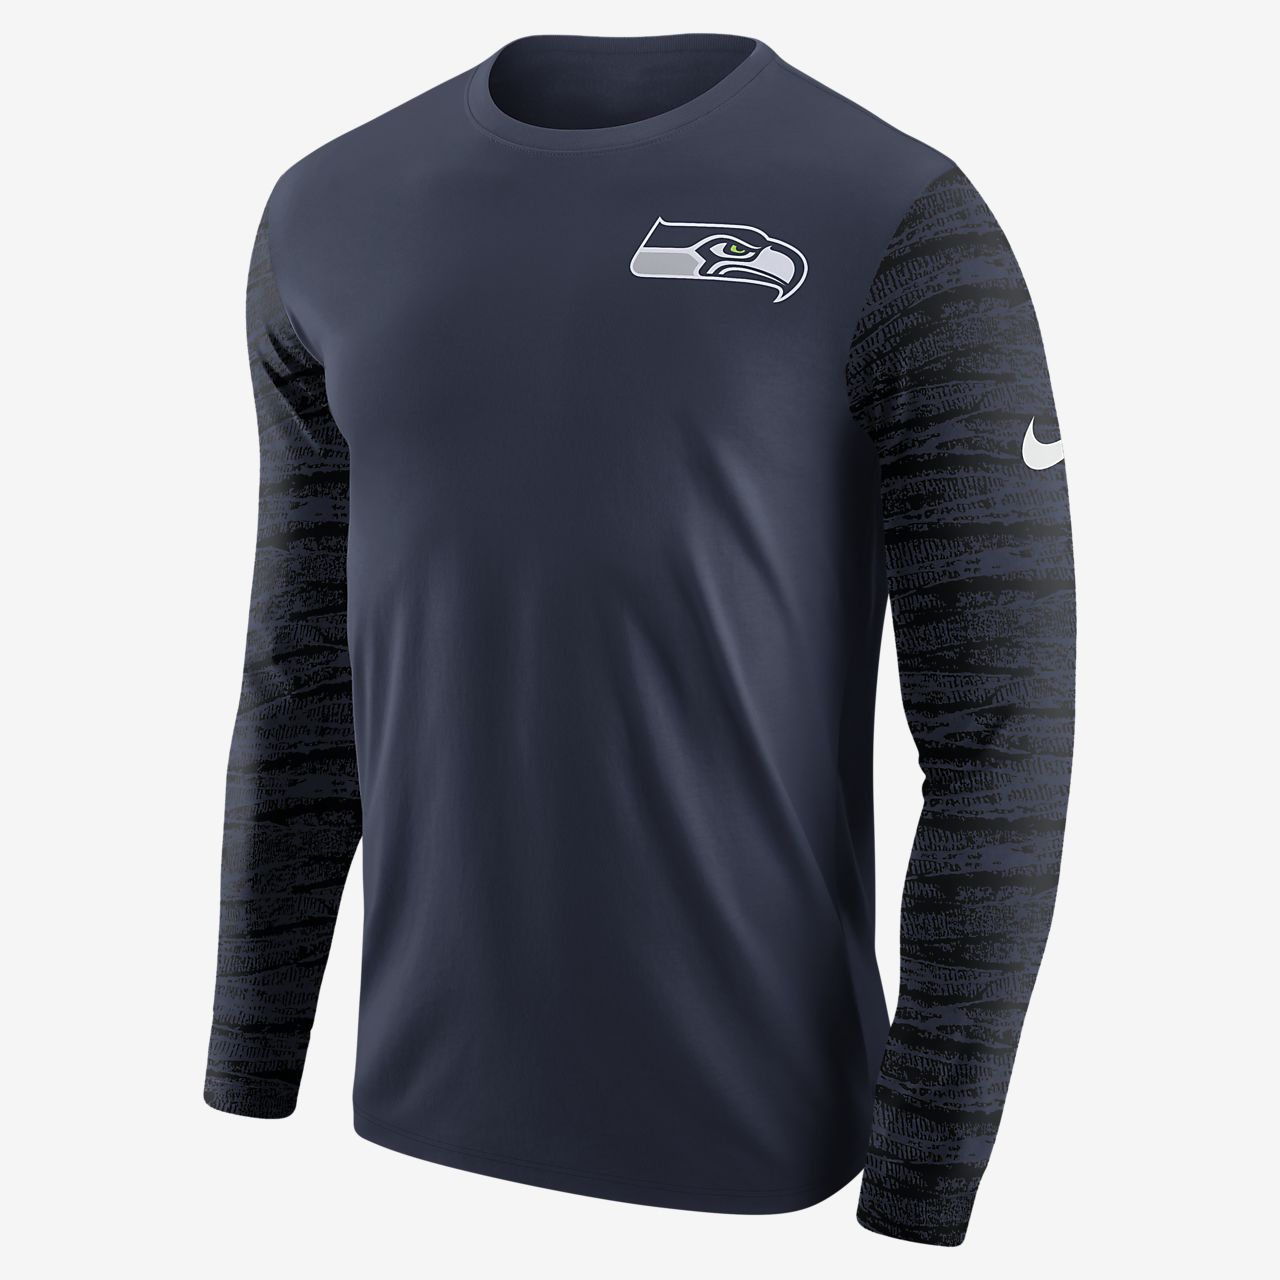 ... Tee-shirt à manches longues Nike Enzyme Pattern (NFL Seahawks) pour  Homme